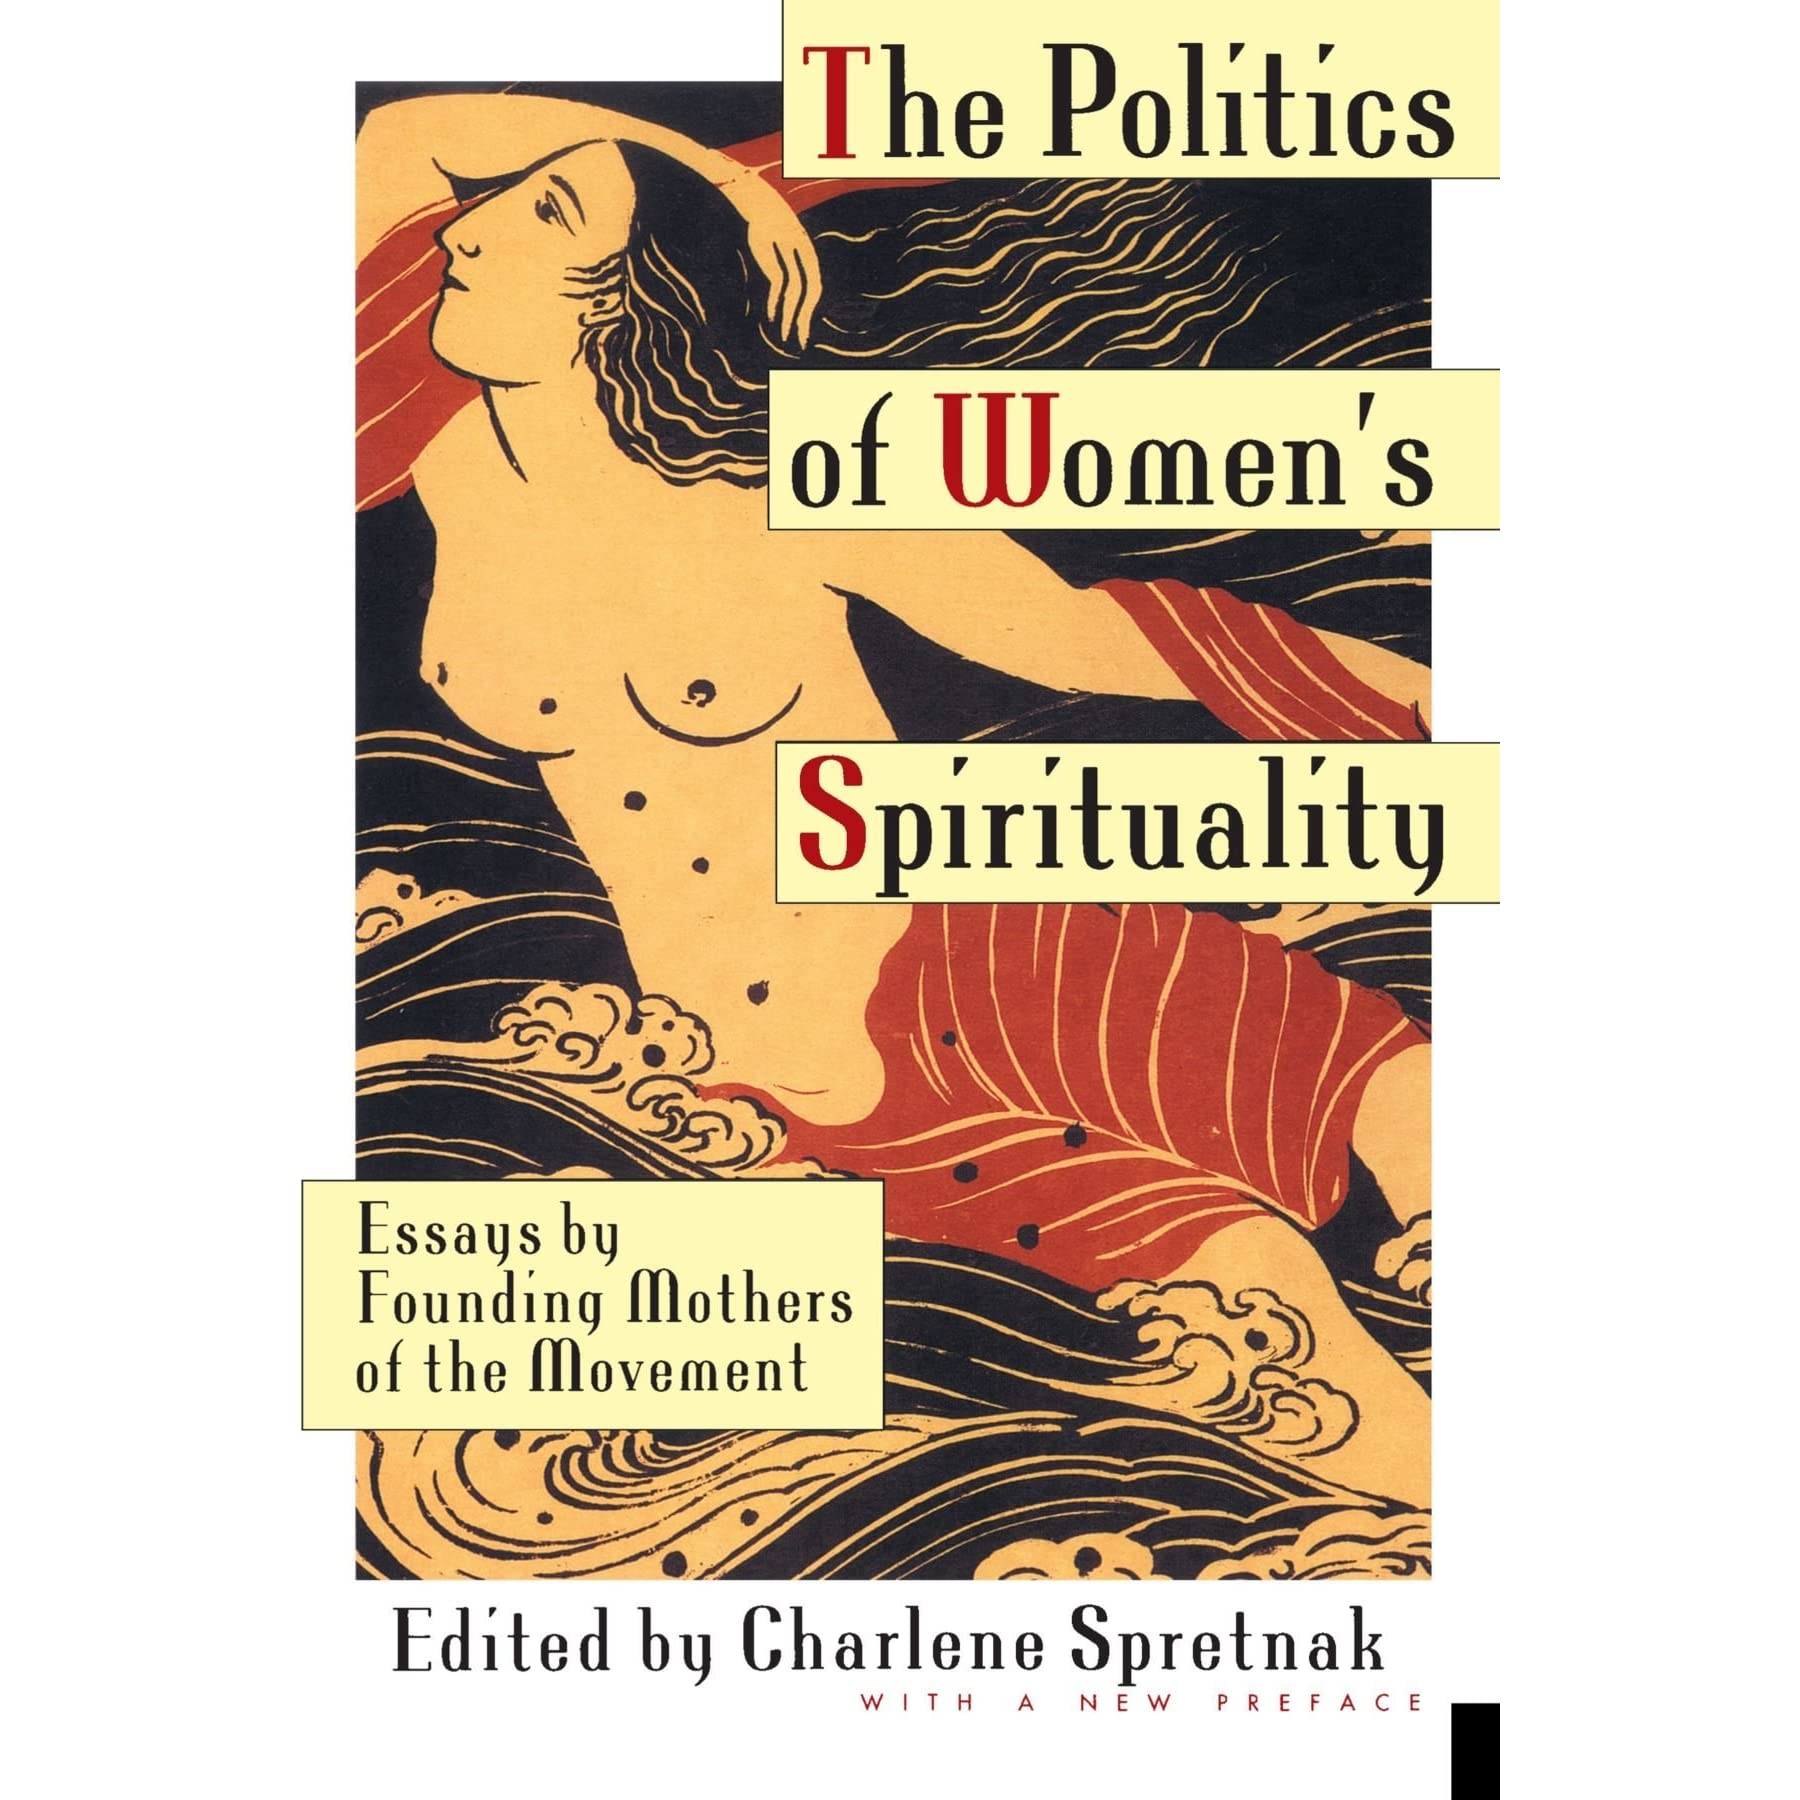 the politics of women s spirituality essays on the rise of the politics of women s spirituality essays on the rise of spiritual power in the feminist movement by charlene spretnak reviews discussion